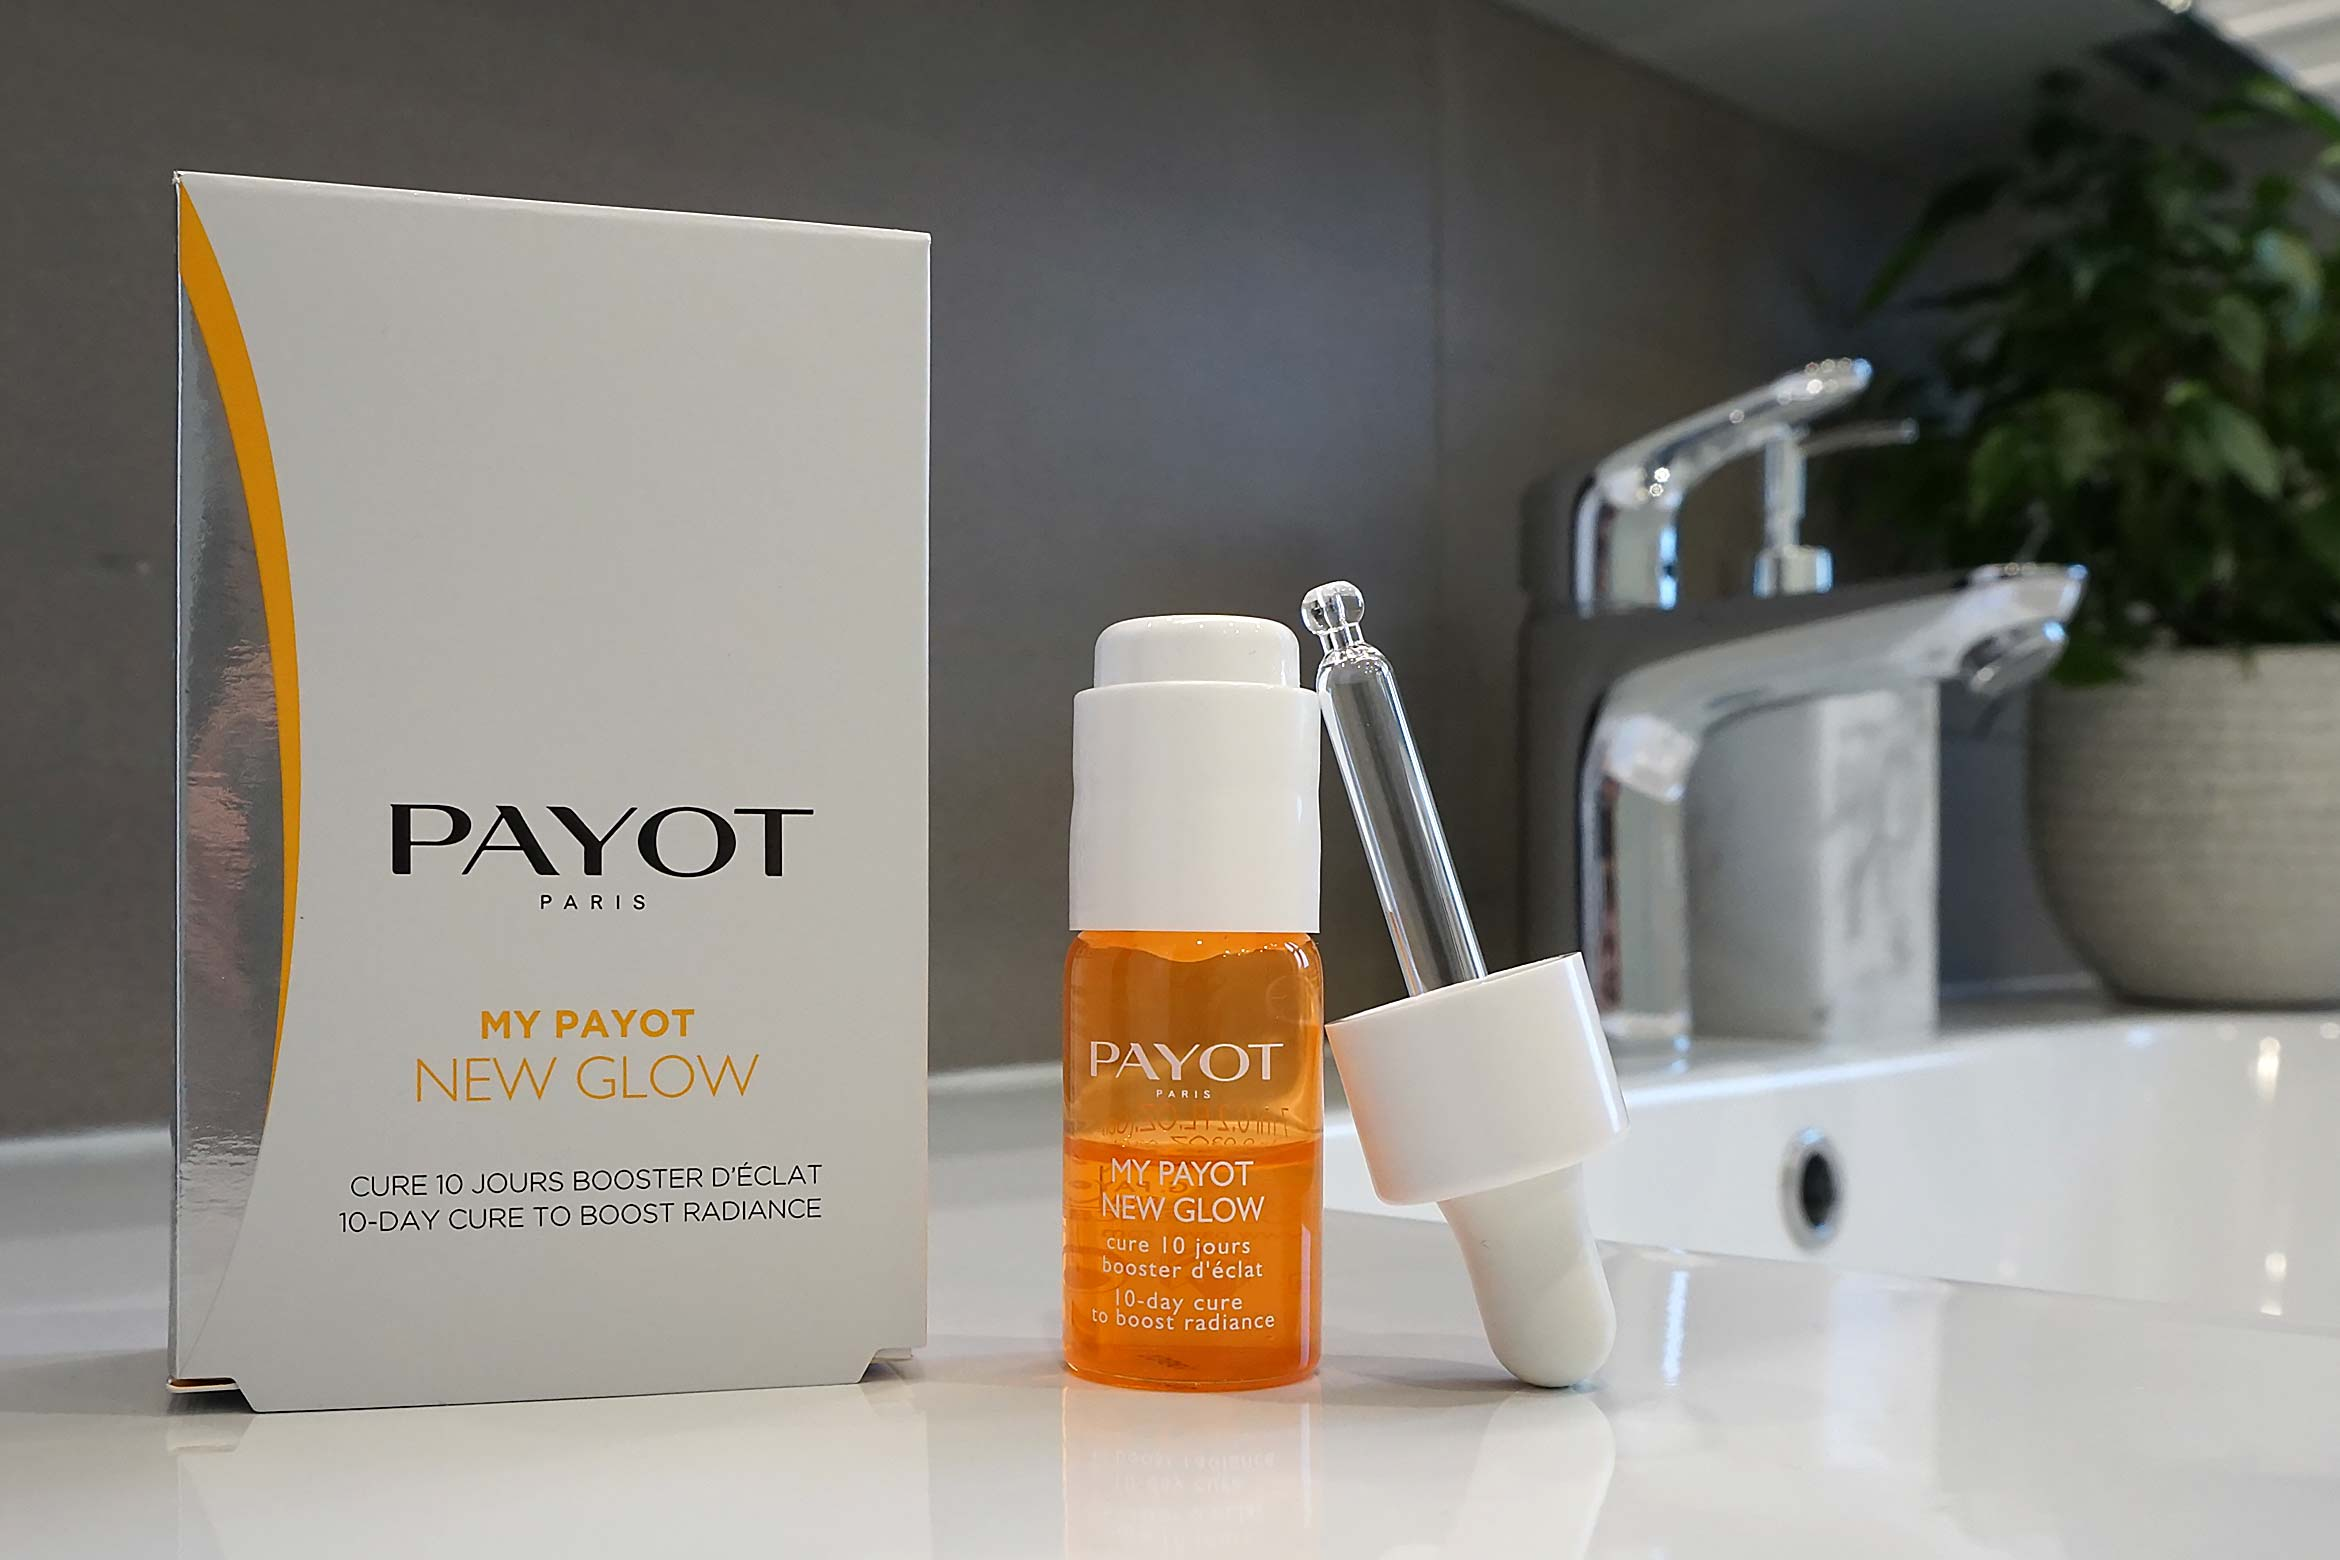 payot my payot new glow review-3